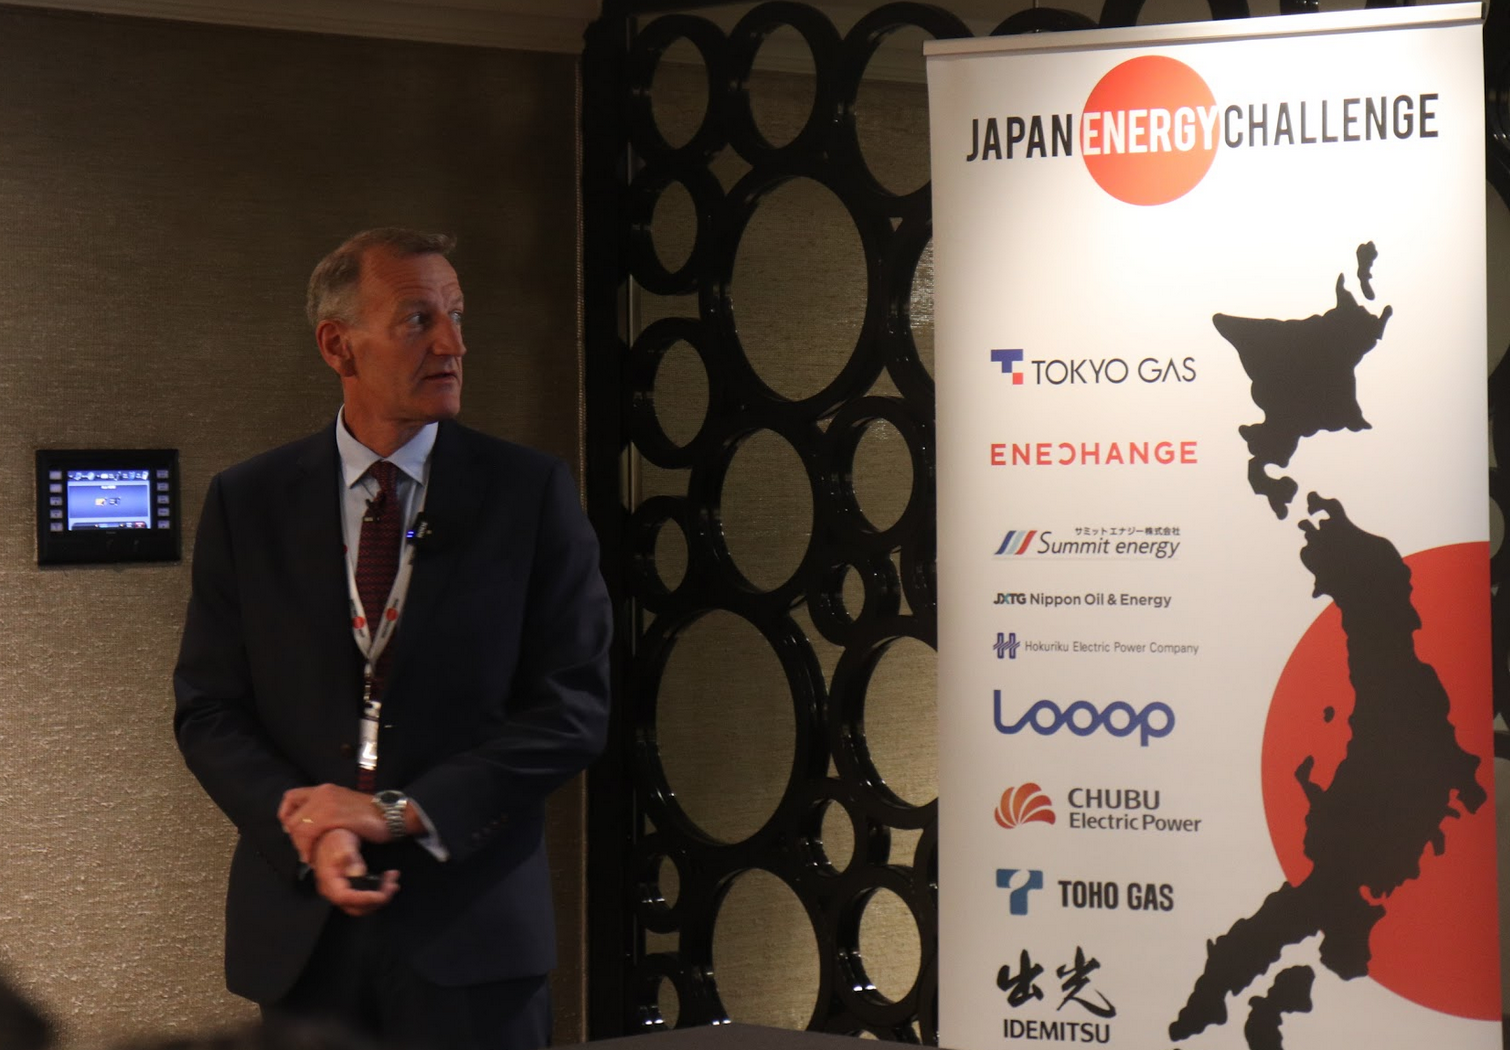 Patrick Caiger-Smith, CEO of Green Energy Options (geo) showcasing his company at JEC2019. GEO use their smart energy devices to help customers save money on their energy bills.